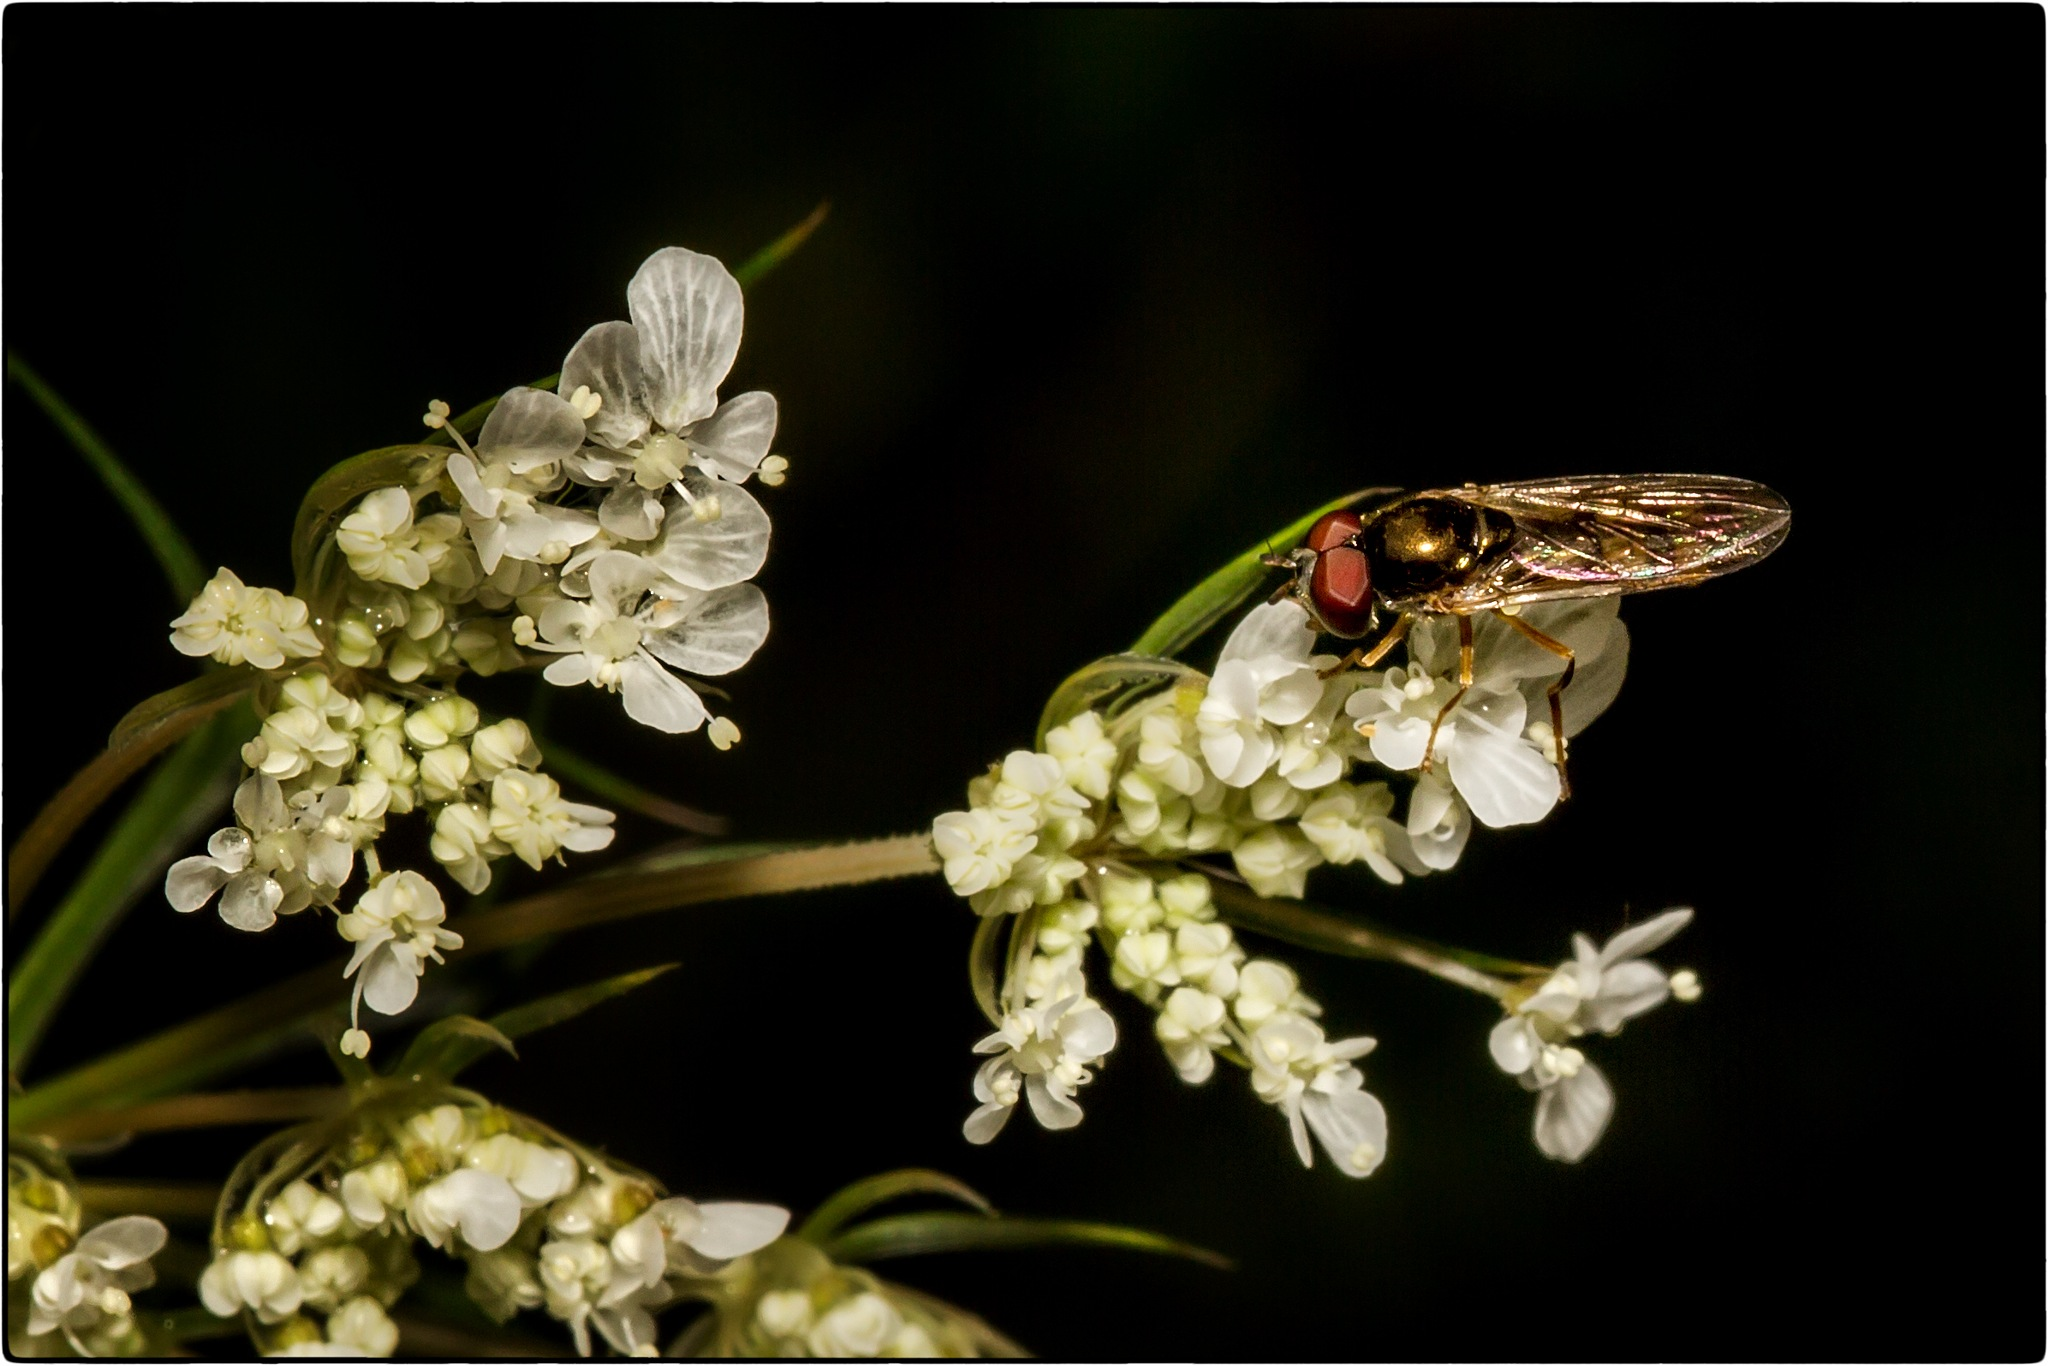 Flower and Fly by stanlupo